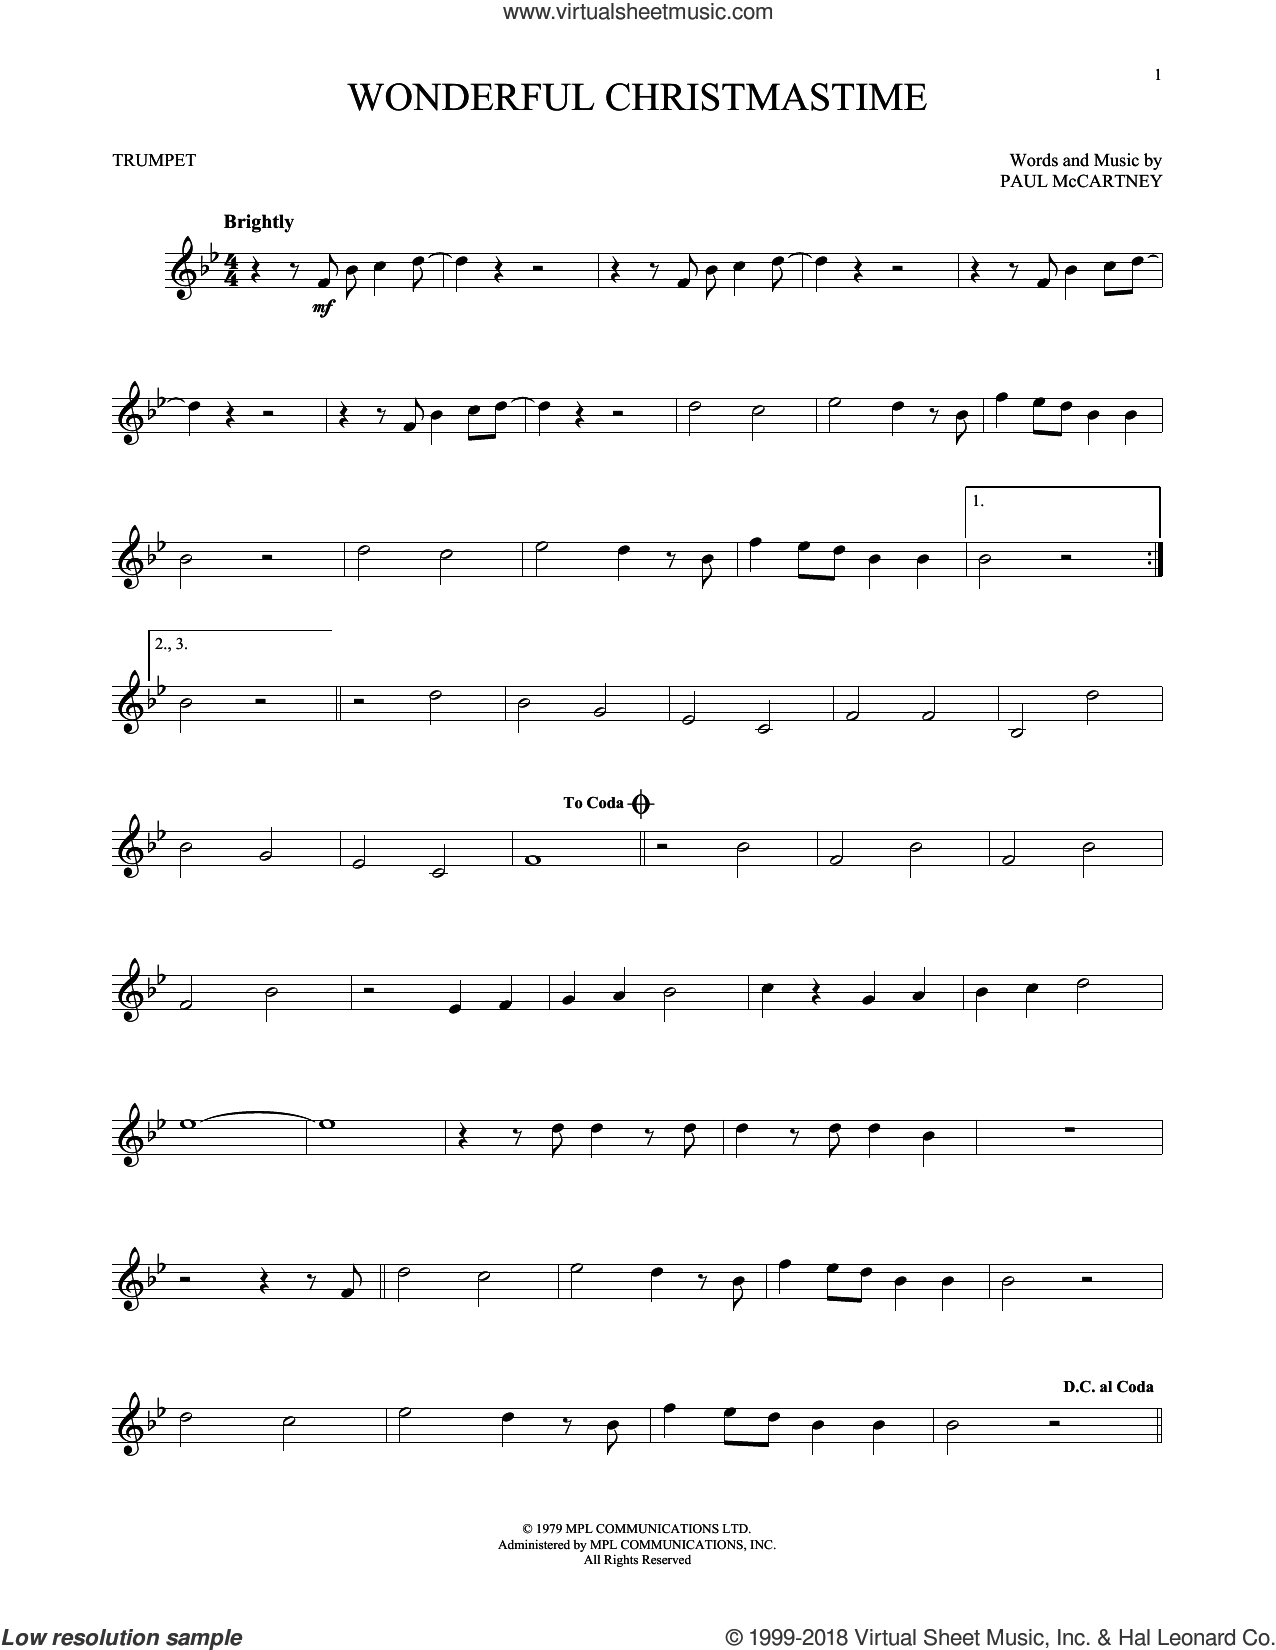 Wonderful Christmastime sheet music for trumpet solo by Paul McCartney, Eli Young Band and Straight No Chaser featuring Paul McCartney, intermediate skill level